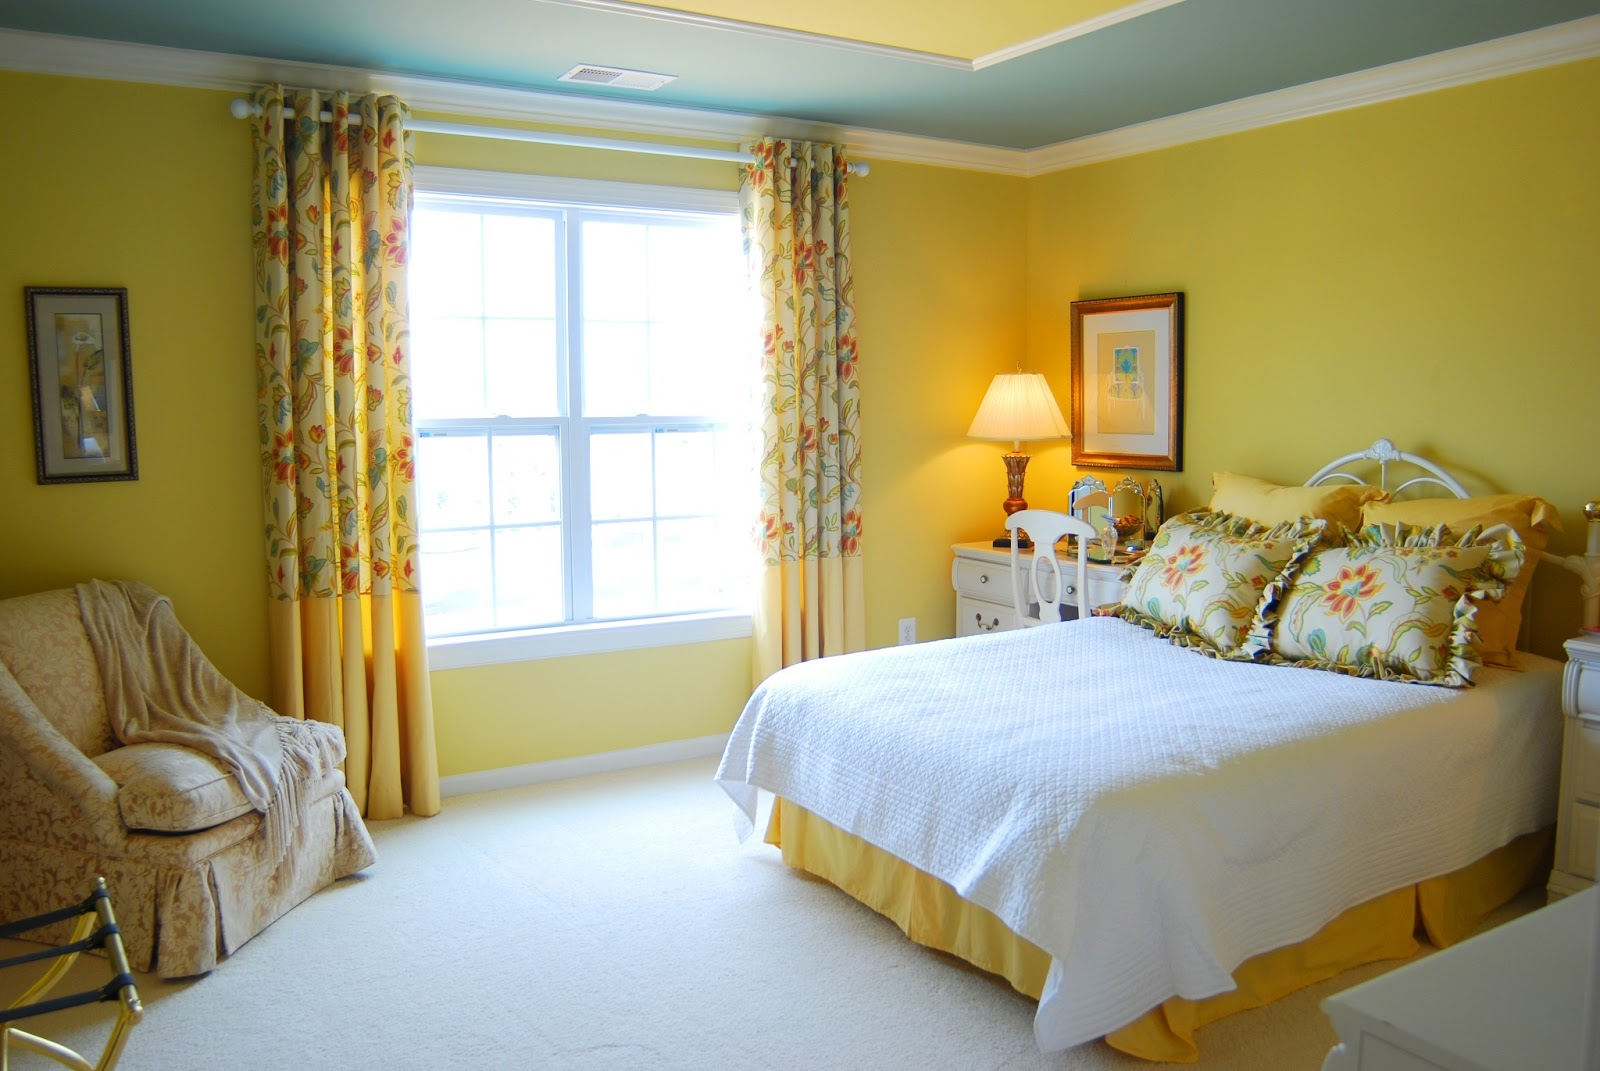 Bedroom colors yellow - Yellow Bedroom Interior Designs